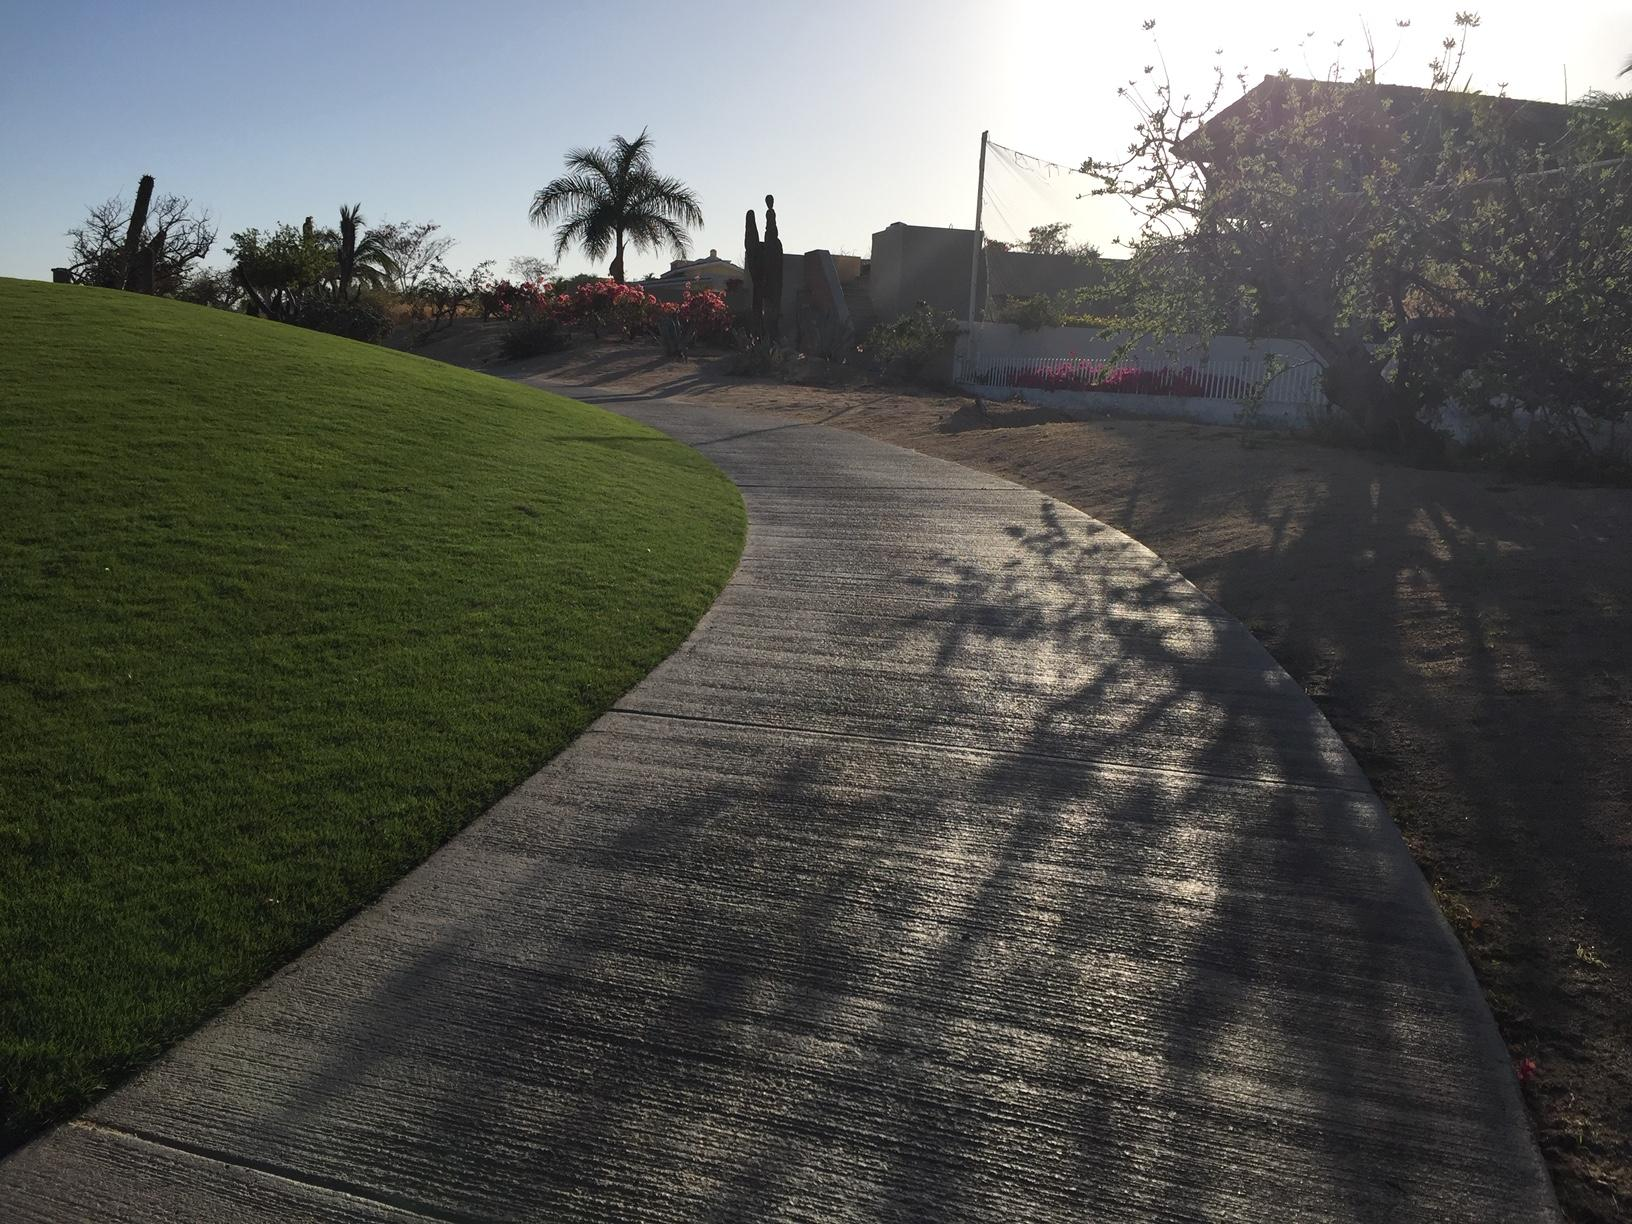 San Jose Corridor, ,Land,For Sale,Bugambillias hole 7 cabo real,19-837